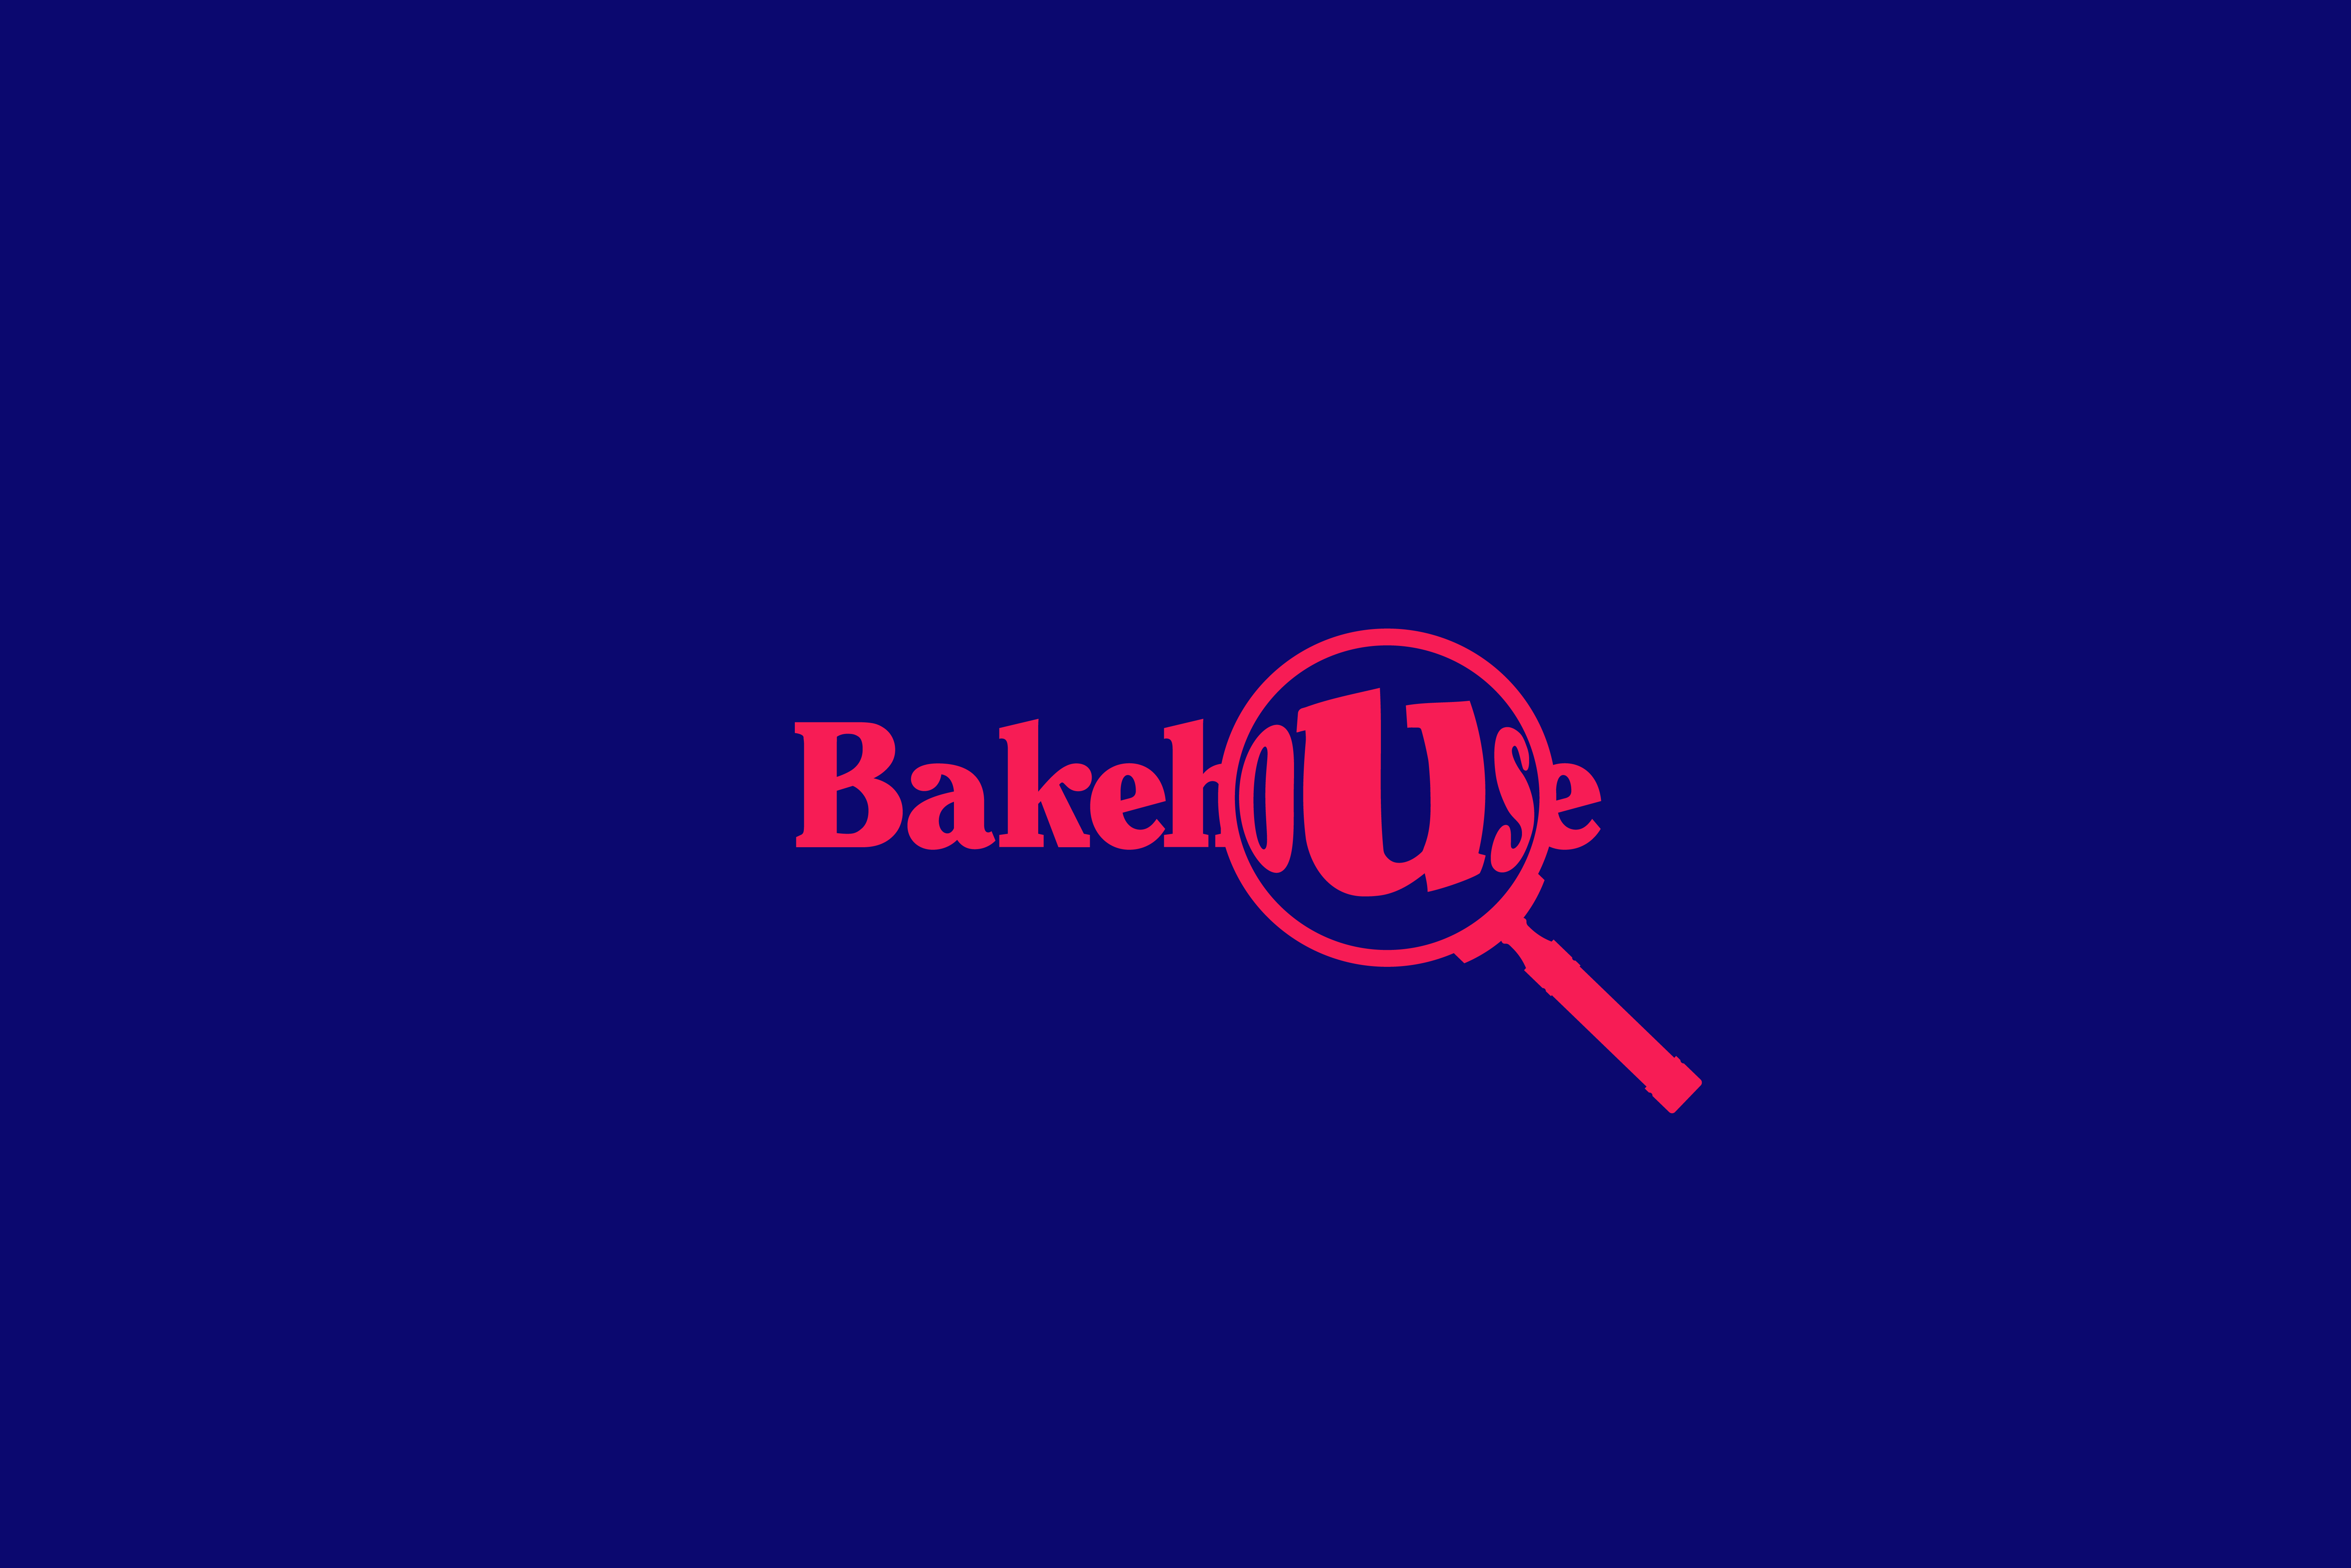 animated bakehouse logo – magnify glass version – by fiasco design